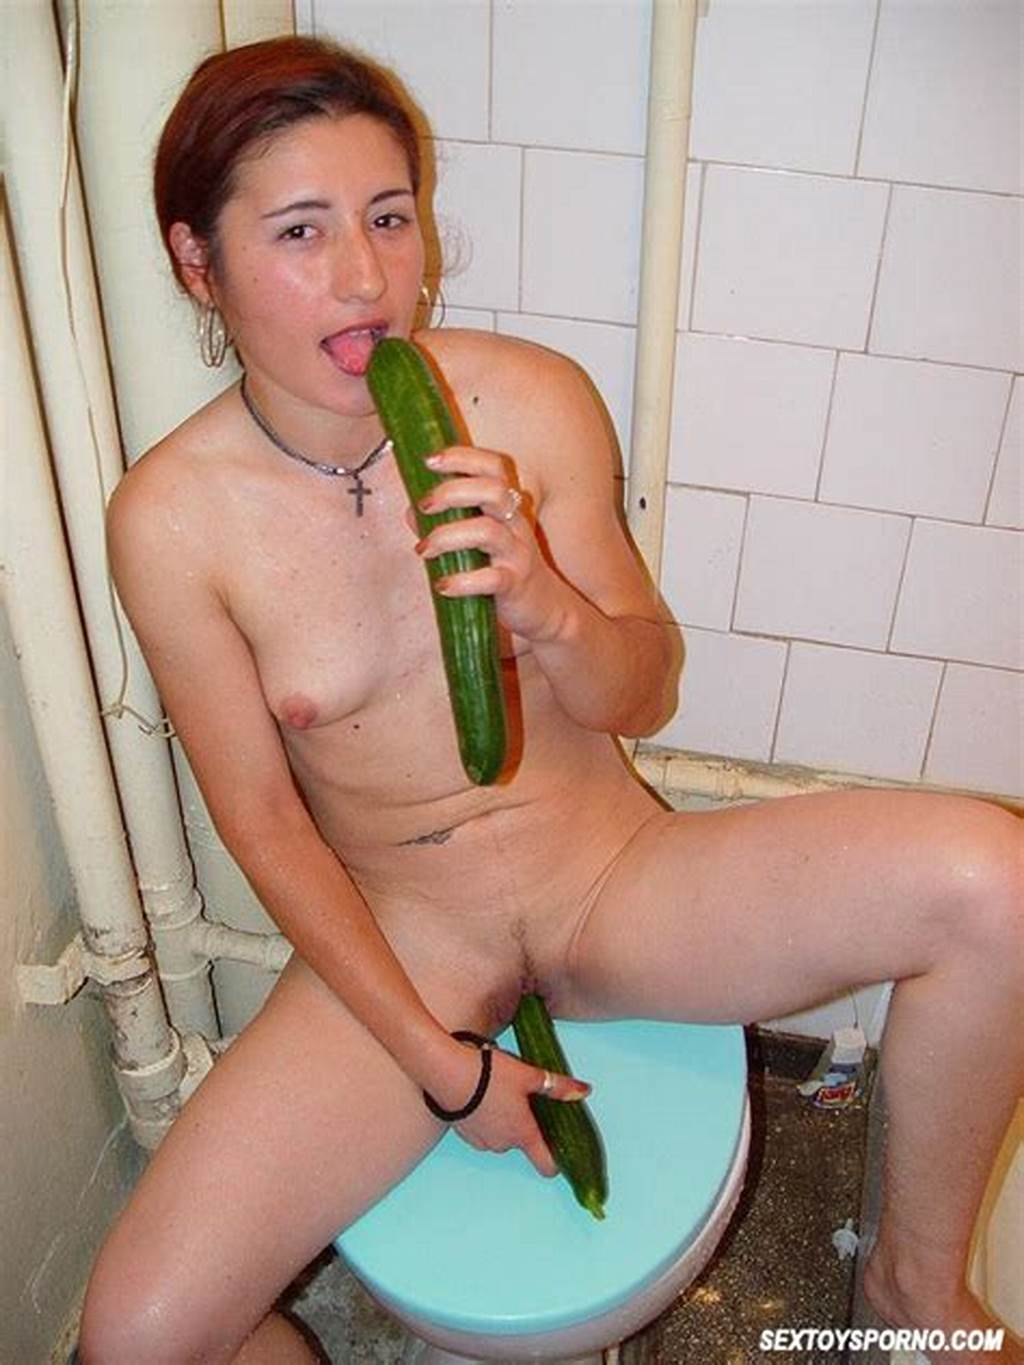 #Amateur #Teen #Toying #Pussy #At #Shower #3411